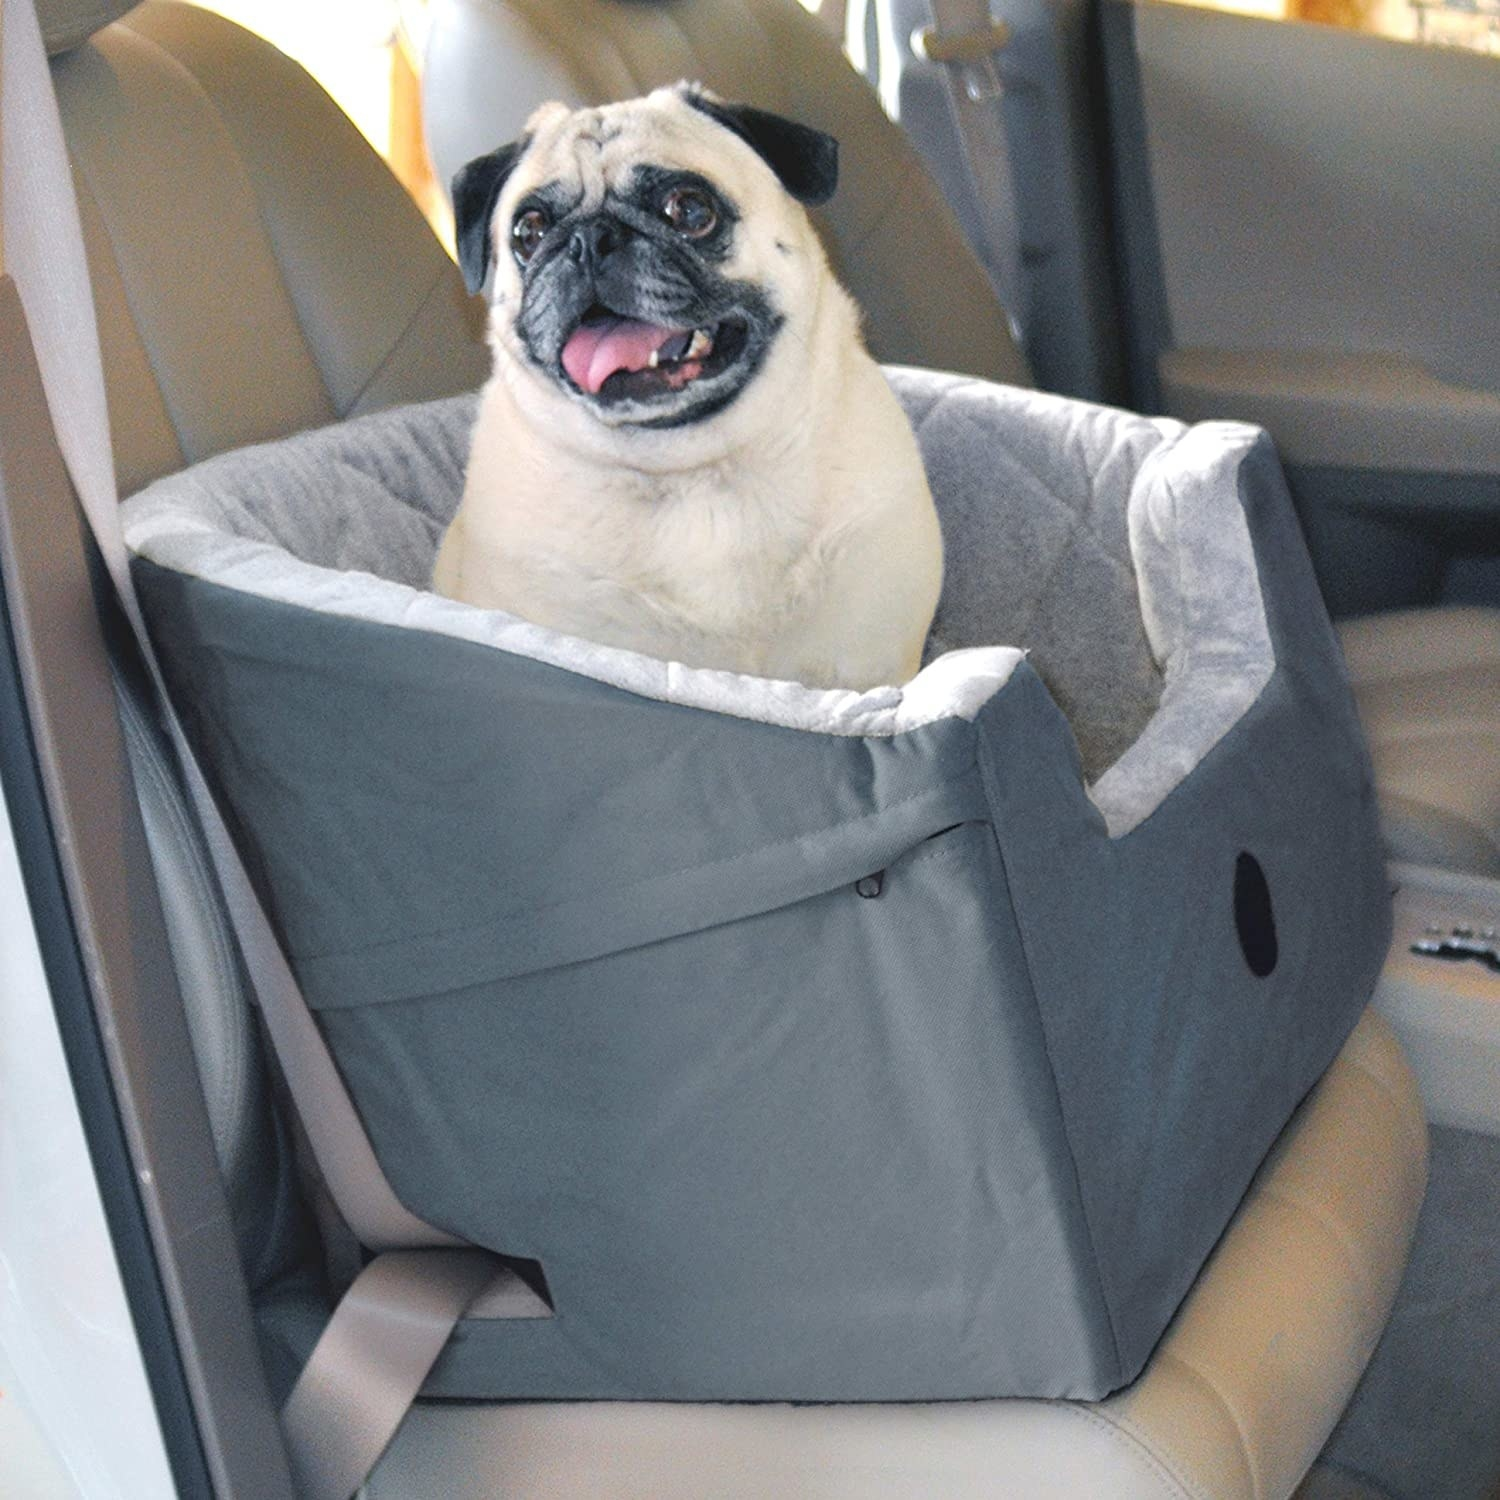 A dog sitting in the booster seat